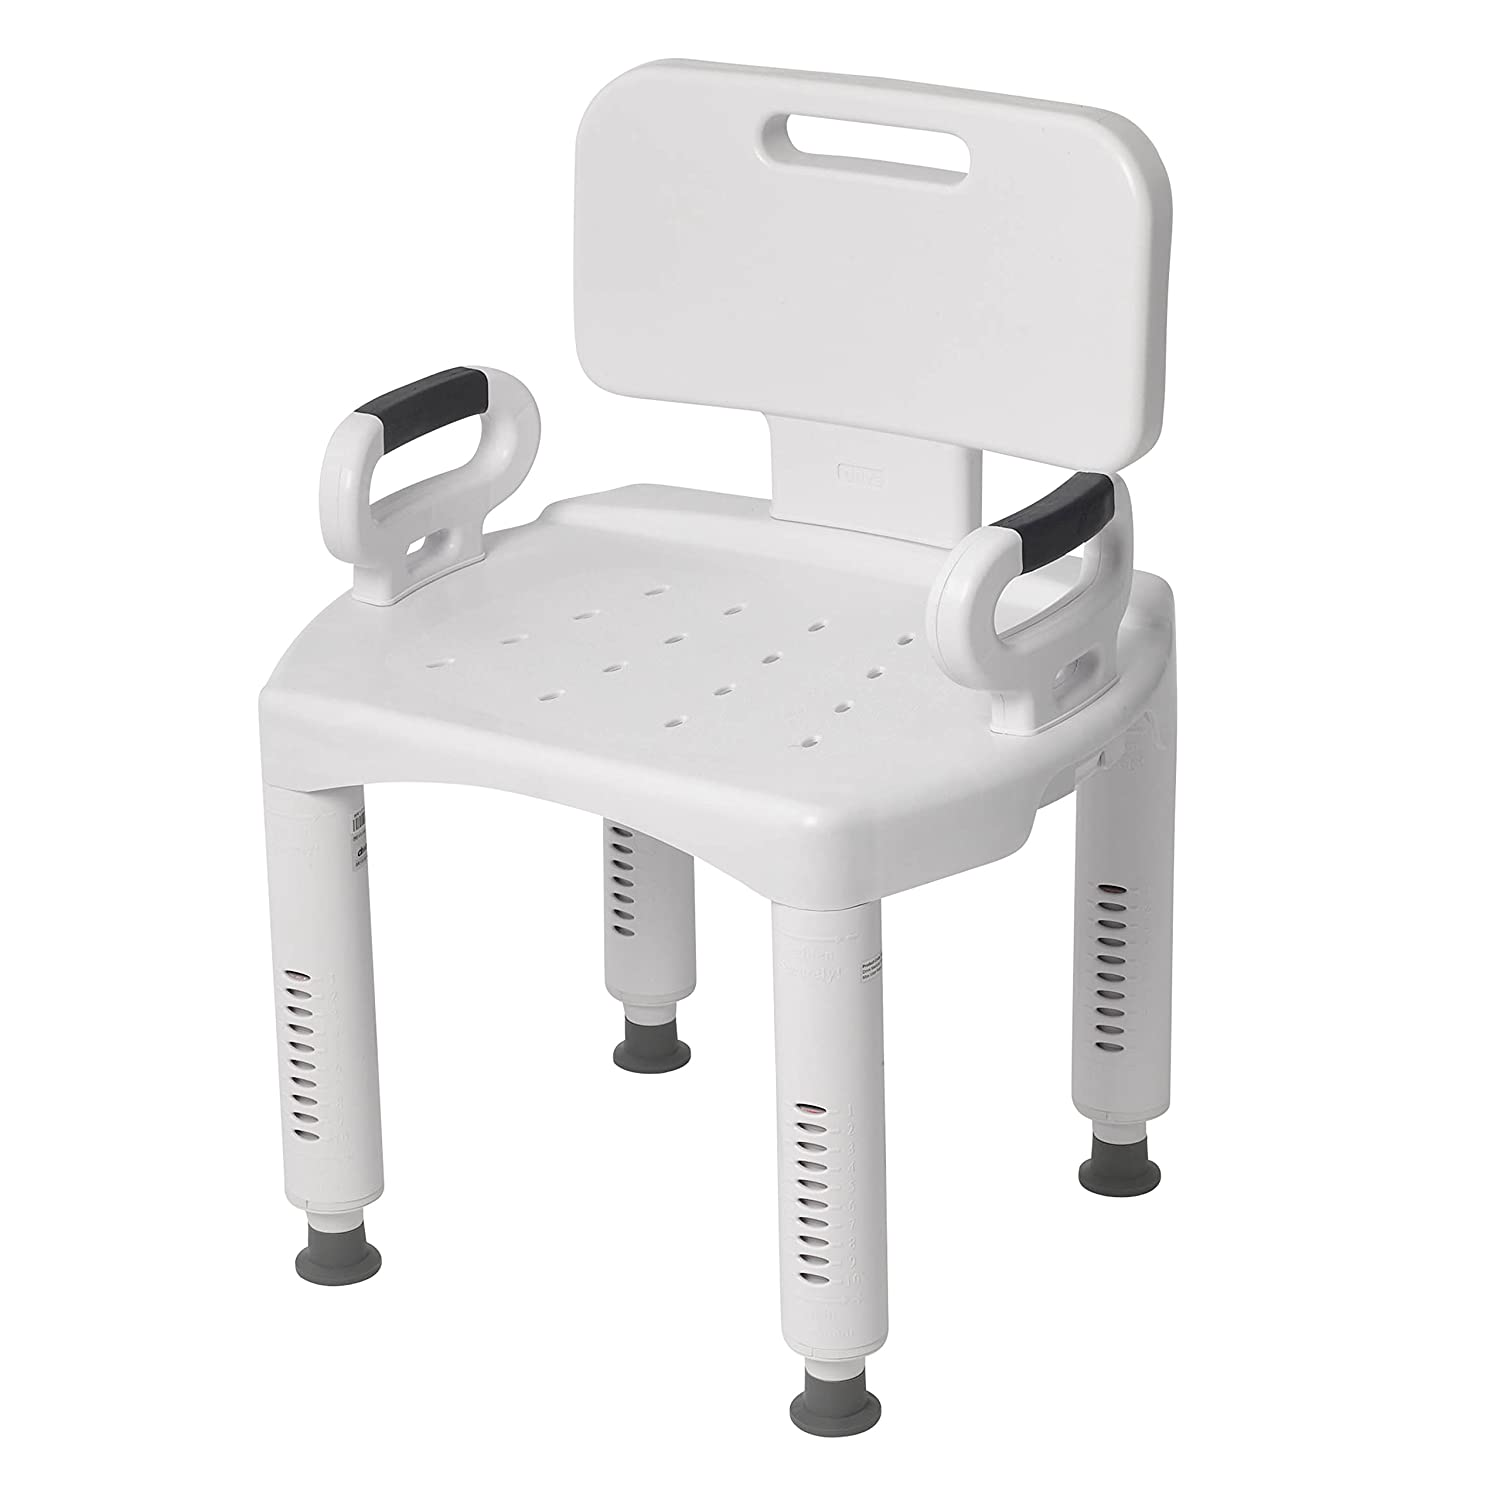 . Top 10 Best Shower Chairs for the Elderly 2016 2017 on Flipboard